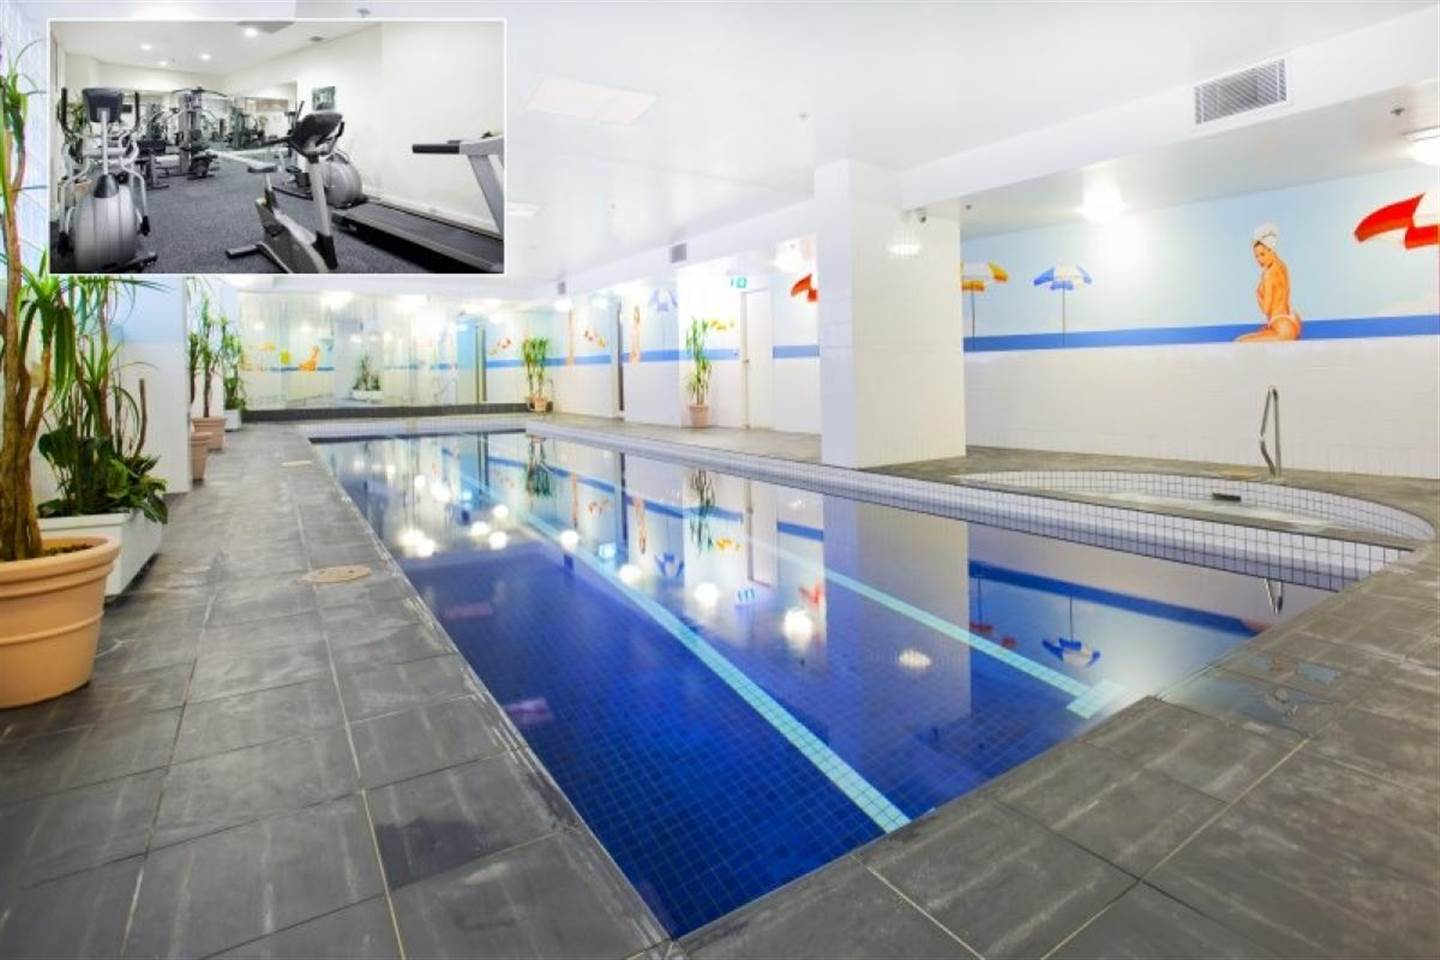 Two Bedroom Apartment Features An Indoor Pool